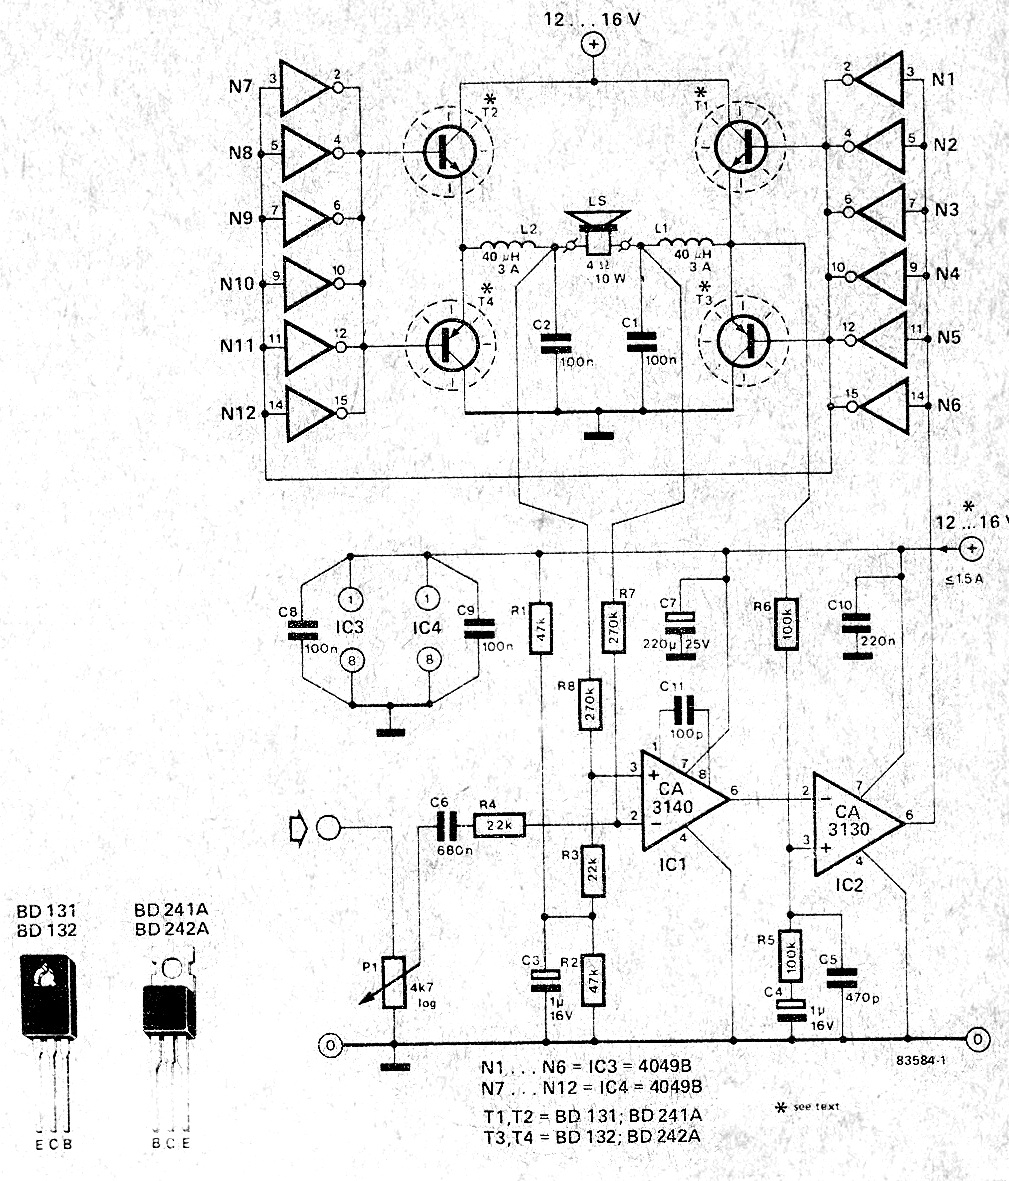 Simple Amplifier Using With Mje340 Tip3055 Schematic